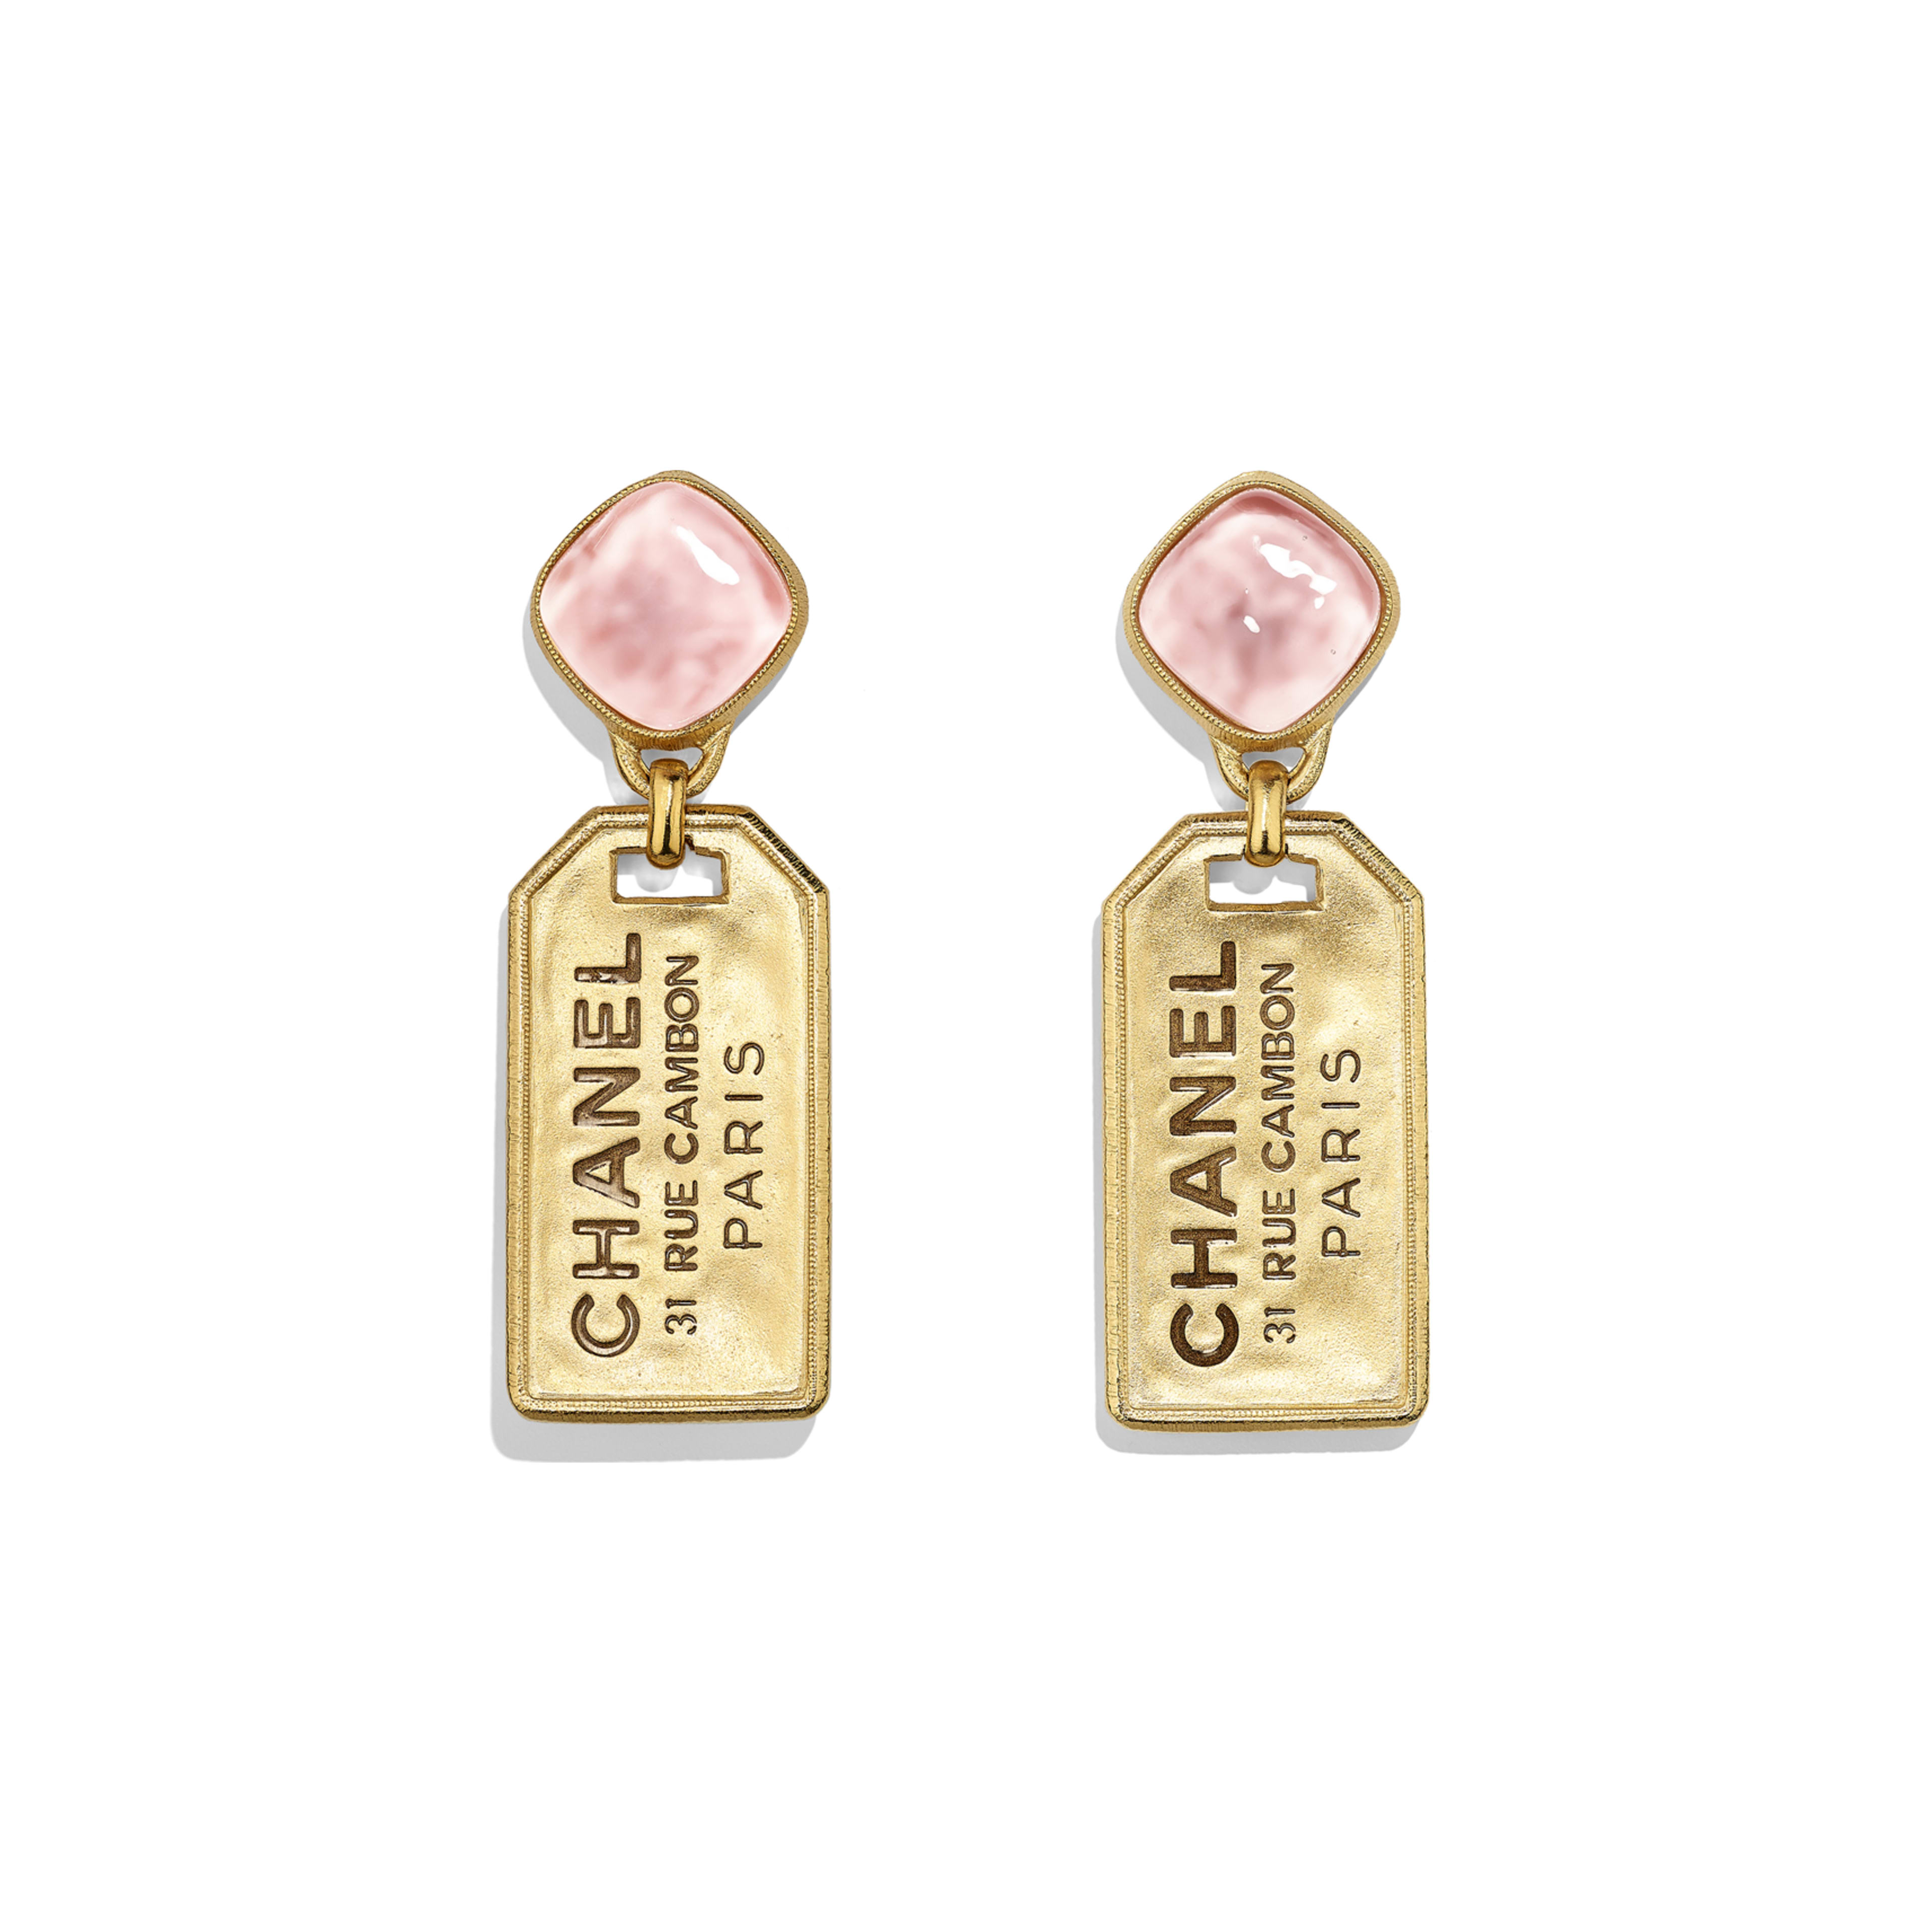 Earrings - Gold & Pink - Metal & Glass - Default view - see full sized version